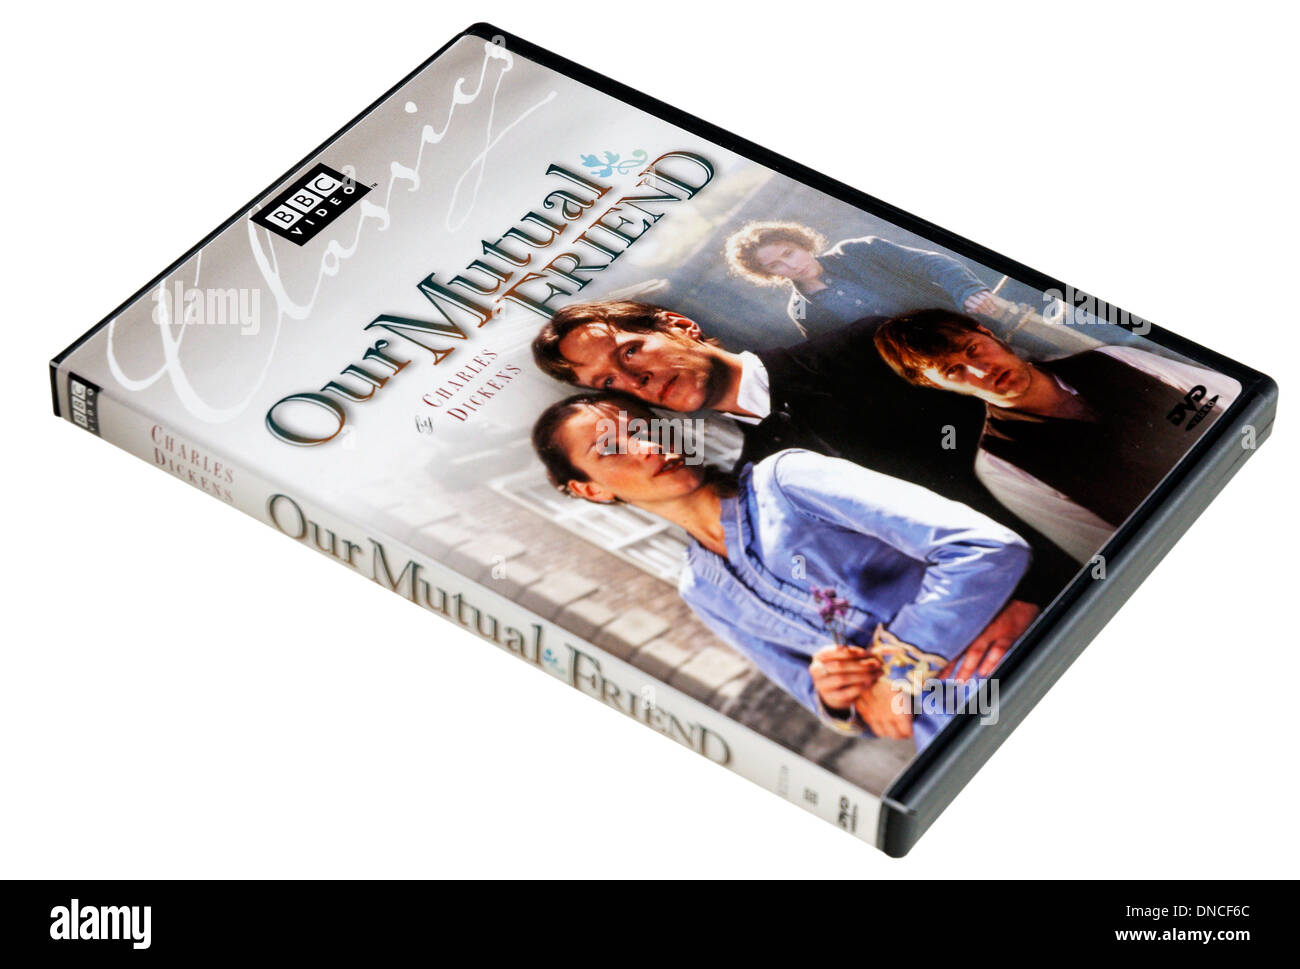 BBC Charles Dickens DVD of our Mutual Friend - Stock Image